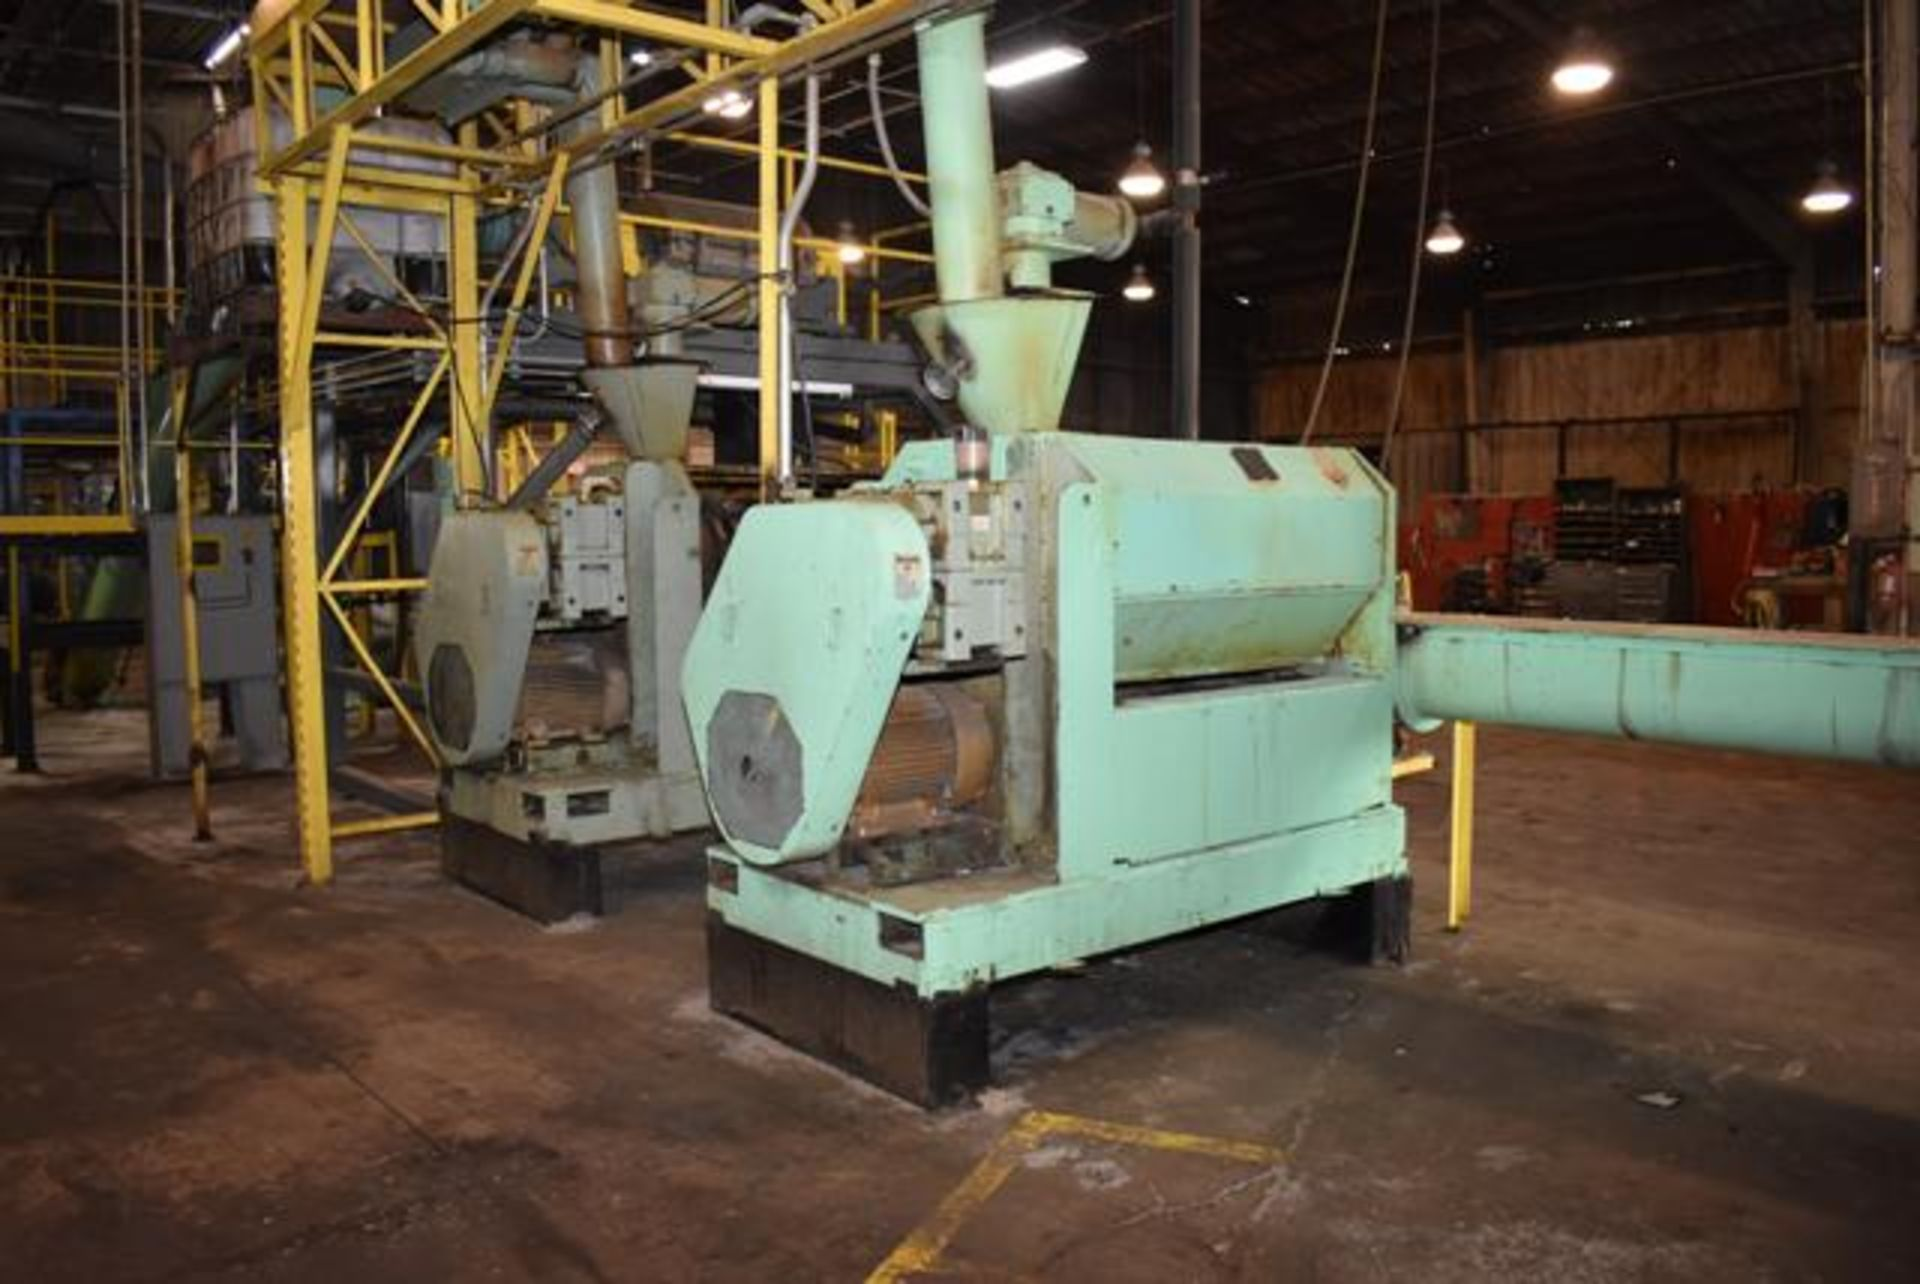 Lot 21 - Insta-Pro Model 4500 Press, Includes Feeder and Crammer, 50 HP Motor. LOADING FEE: $3000